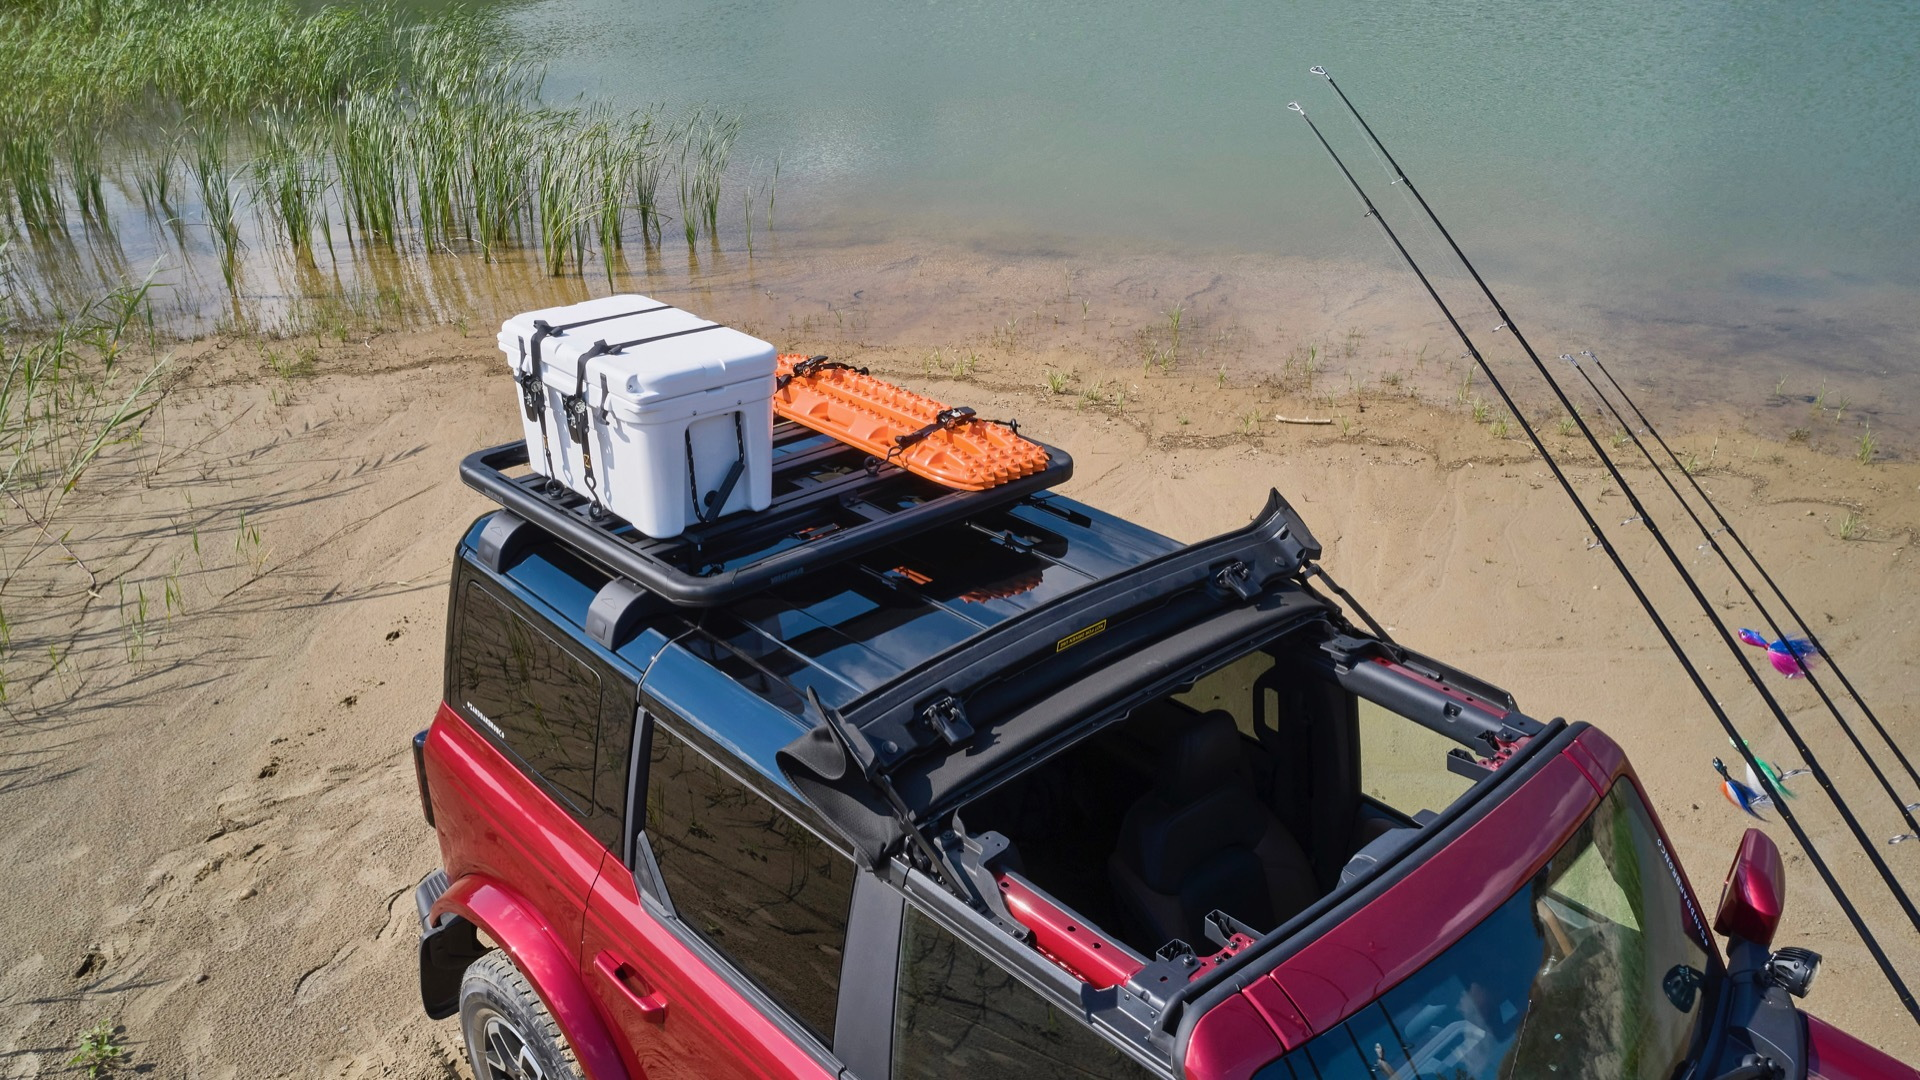 Ford Bronco Four-Door Outer Banks Fishing Guide concept